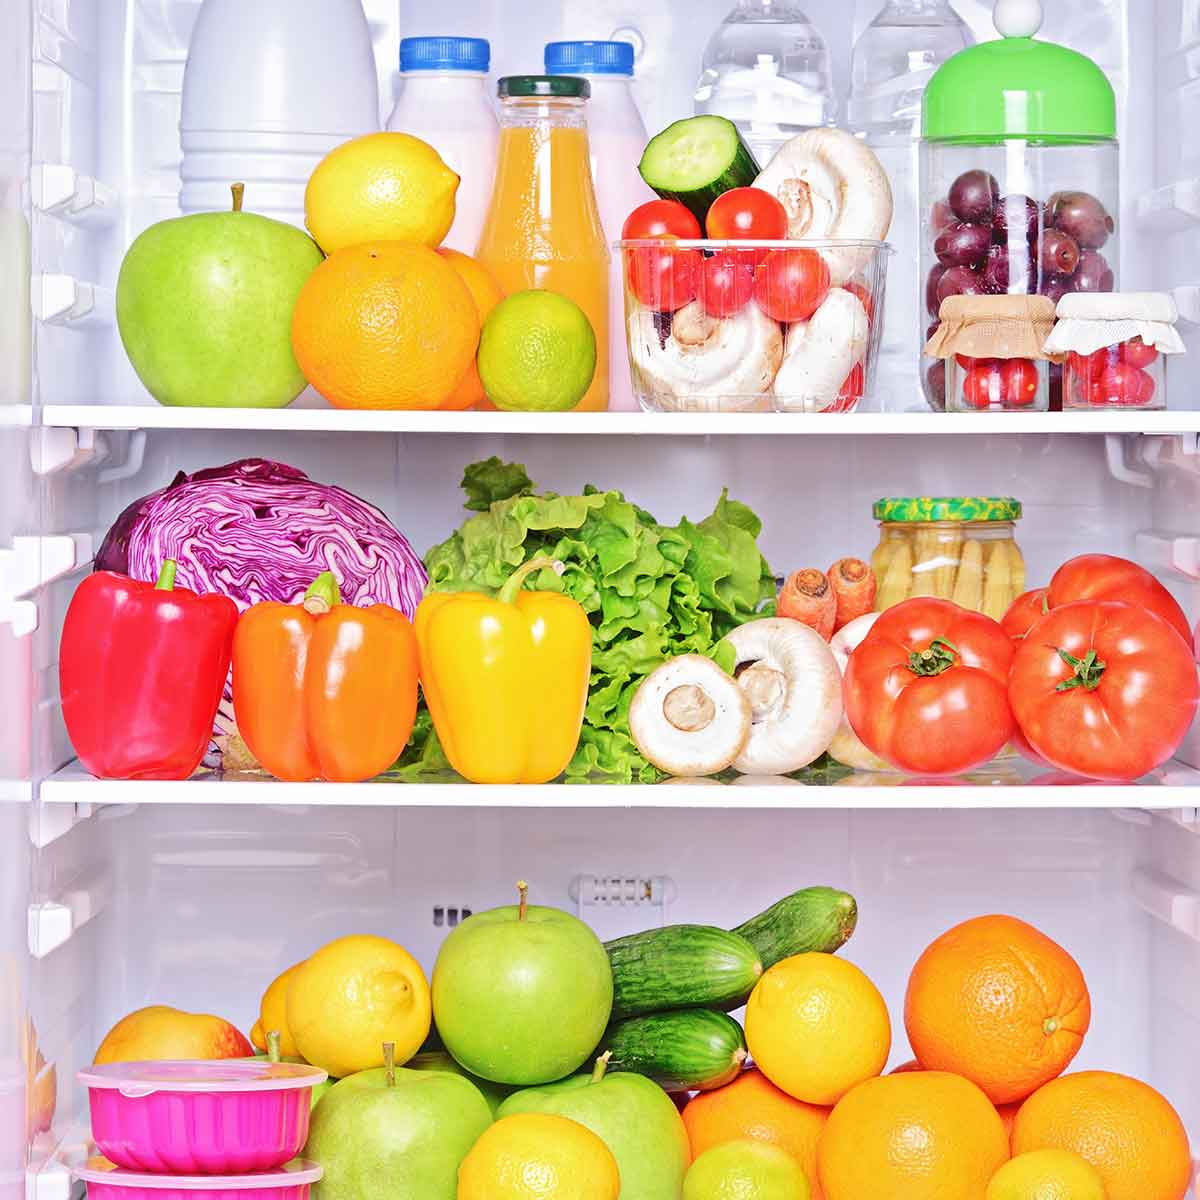 Refrigerator Clean Up